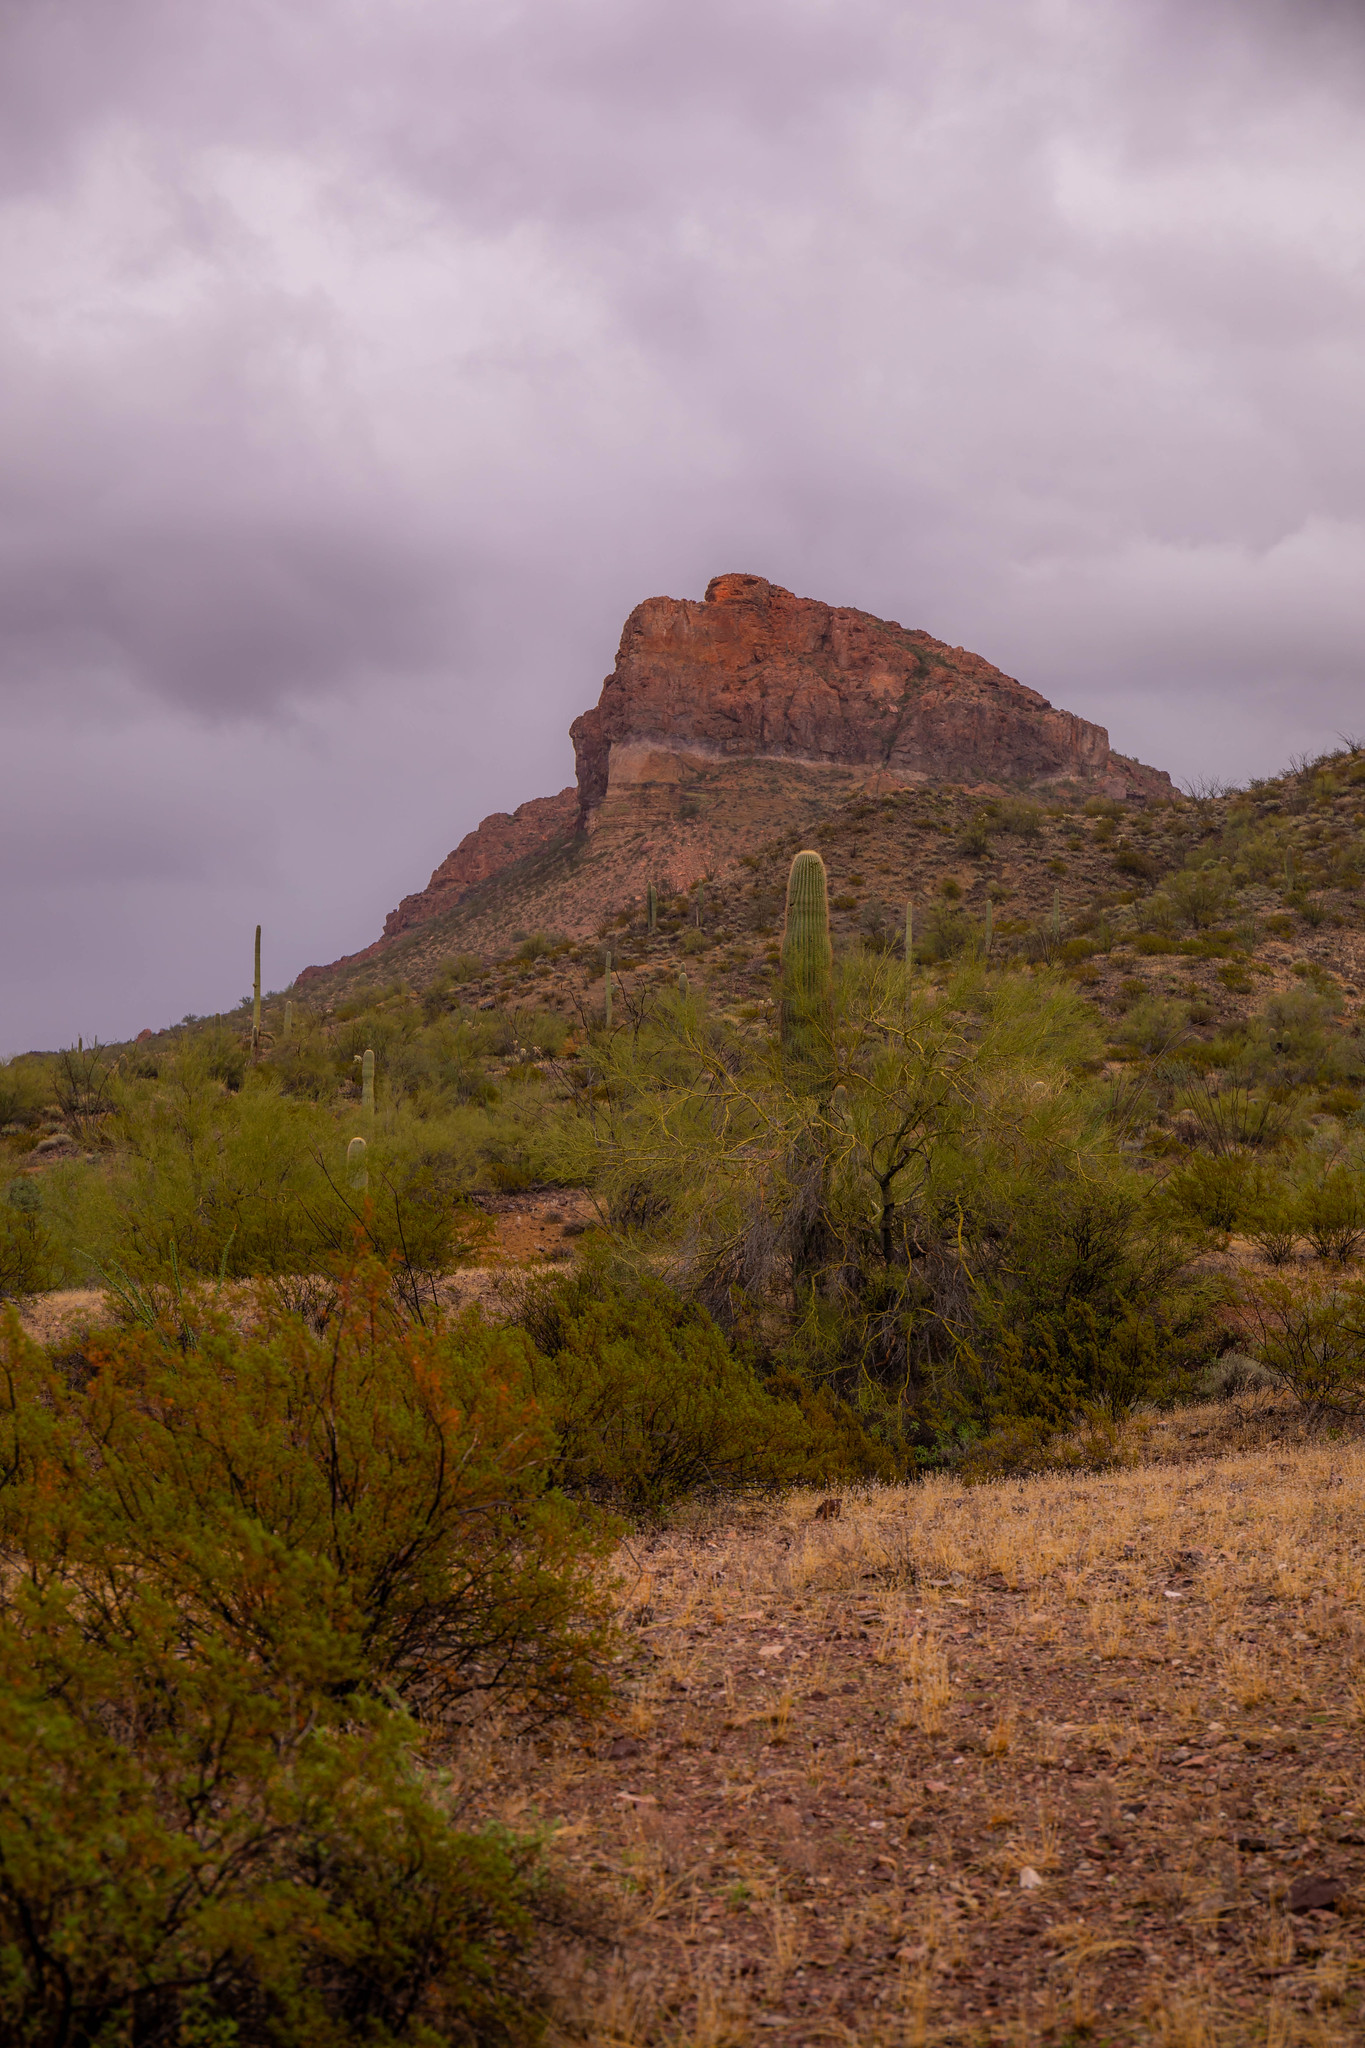 12.26. Organ Pipes National Monument